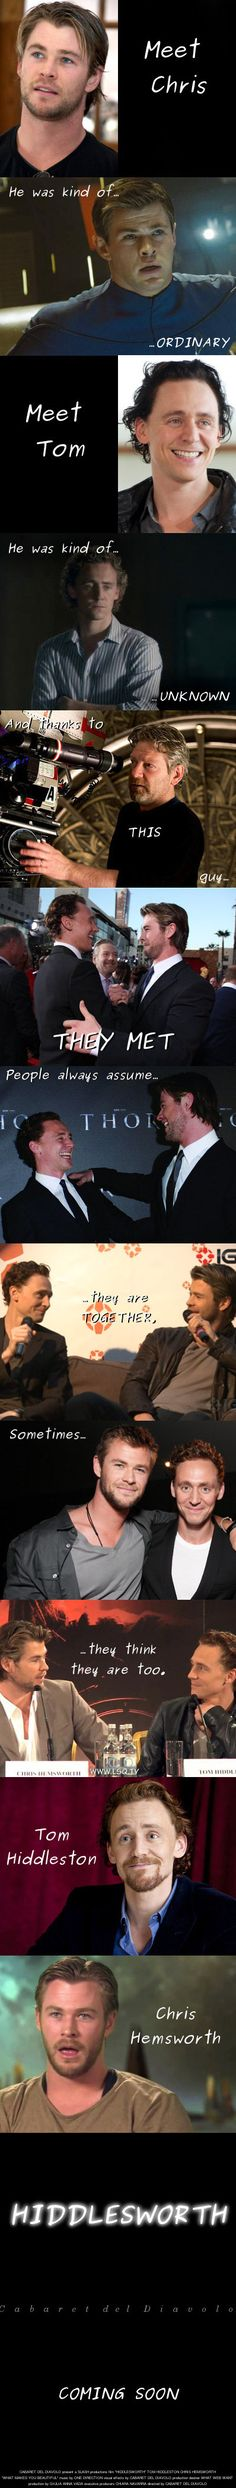 Hiddlesworth :) i dont know it u will really understand this but its still kinda funny if you don't fully get it